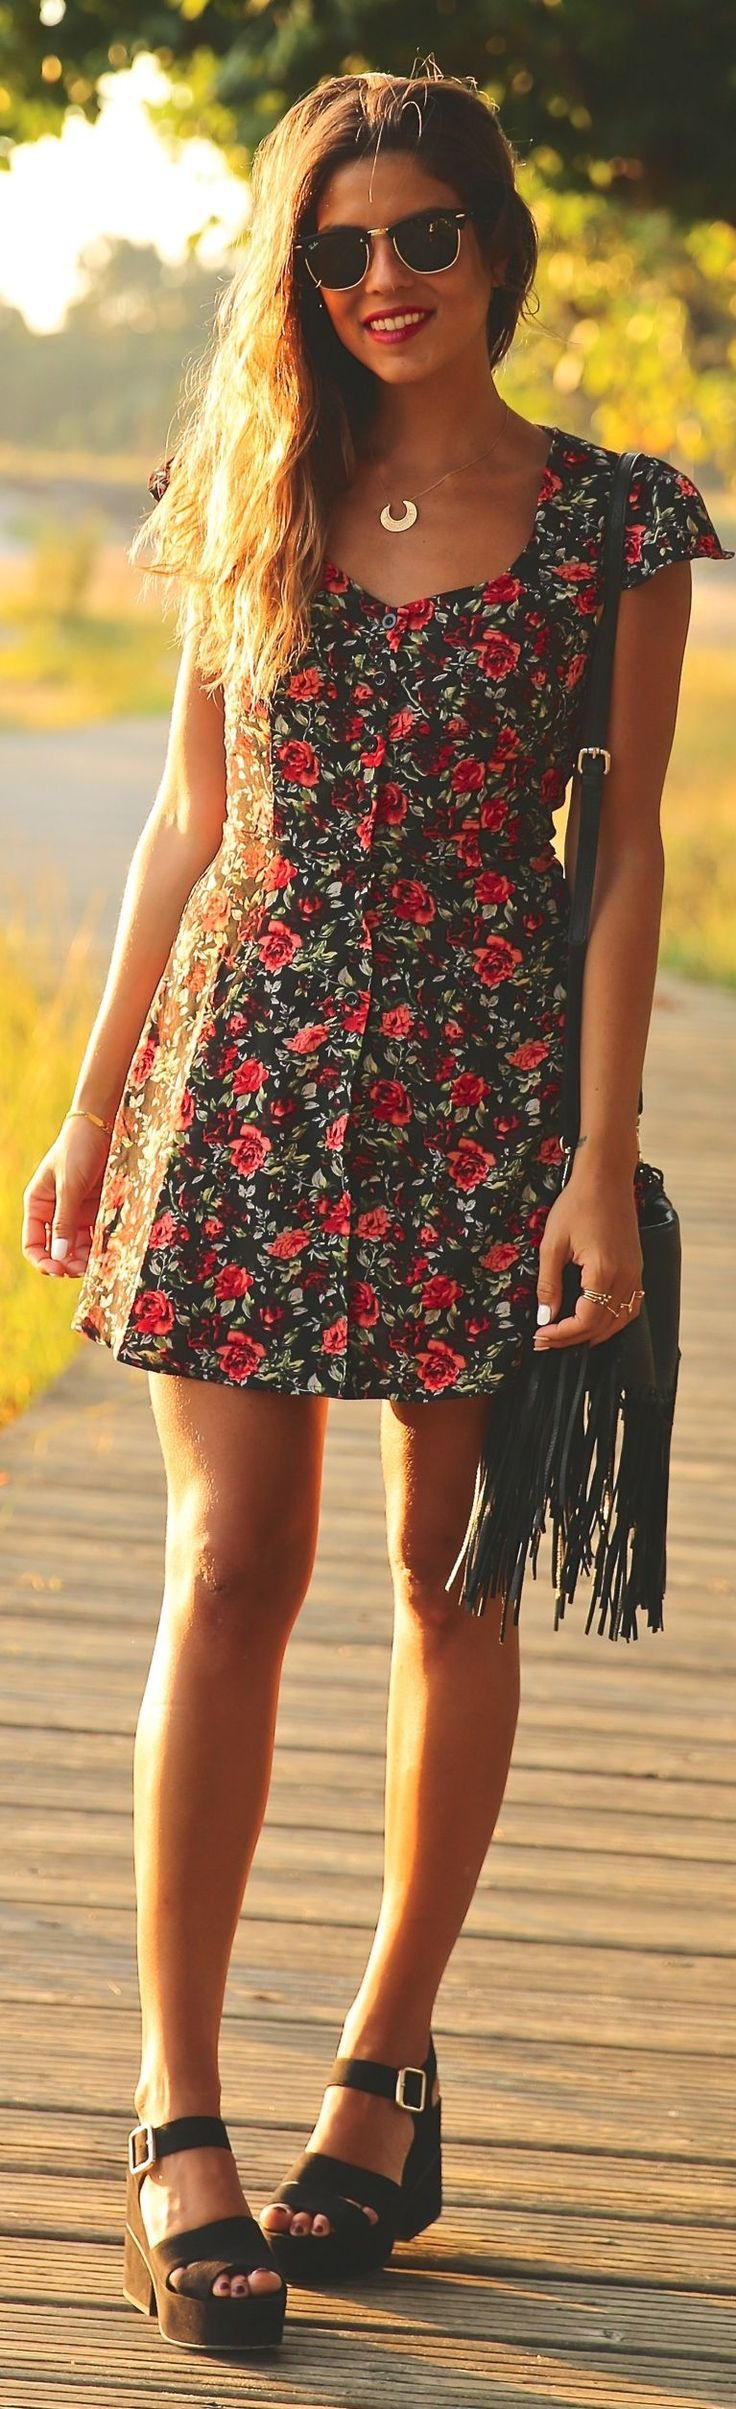 Love the cut at the top flattering summer trends floral dress